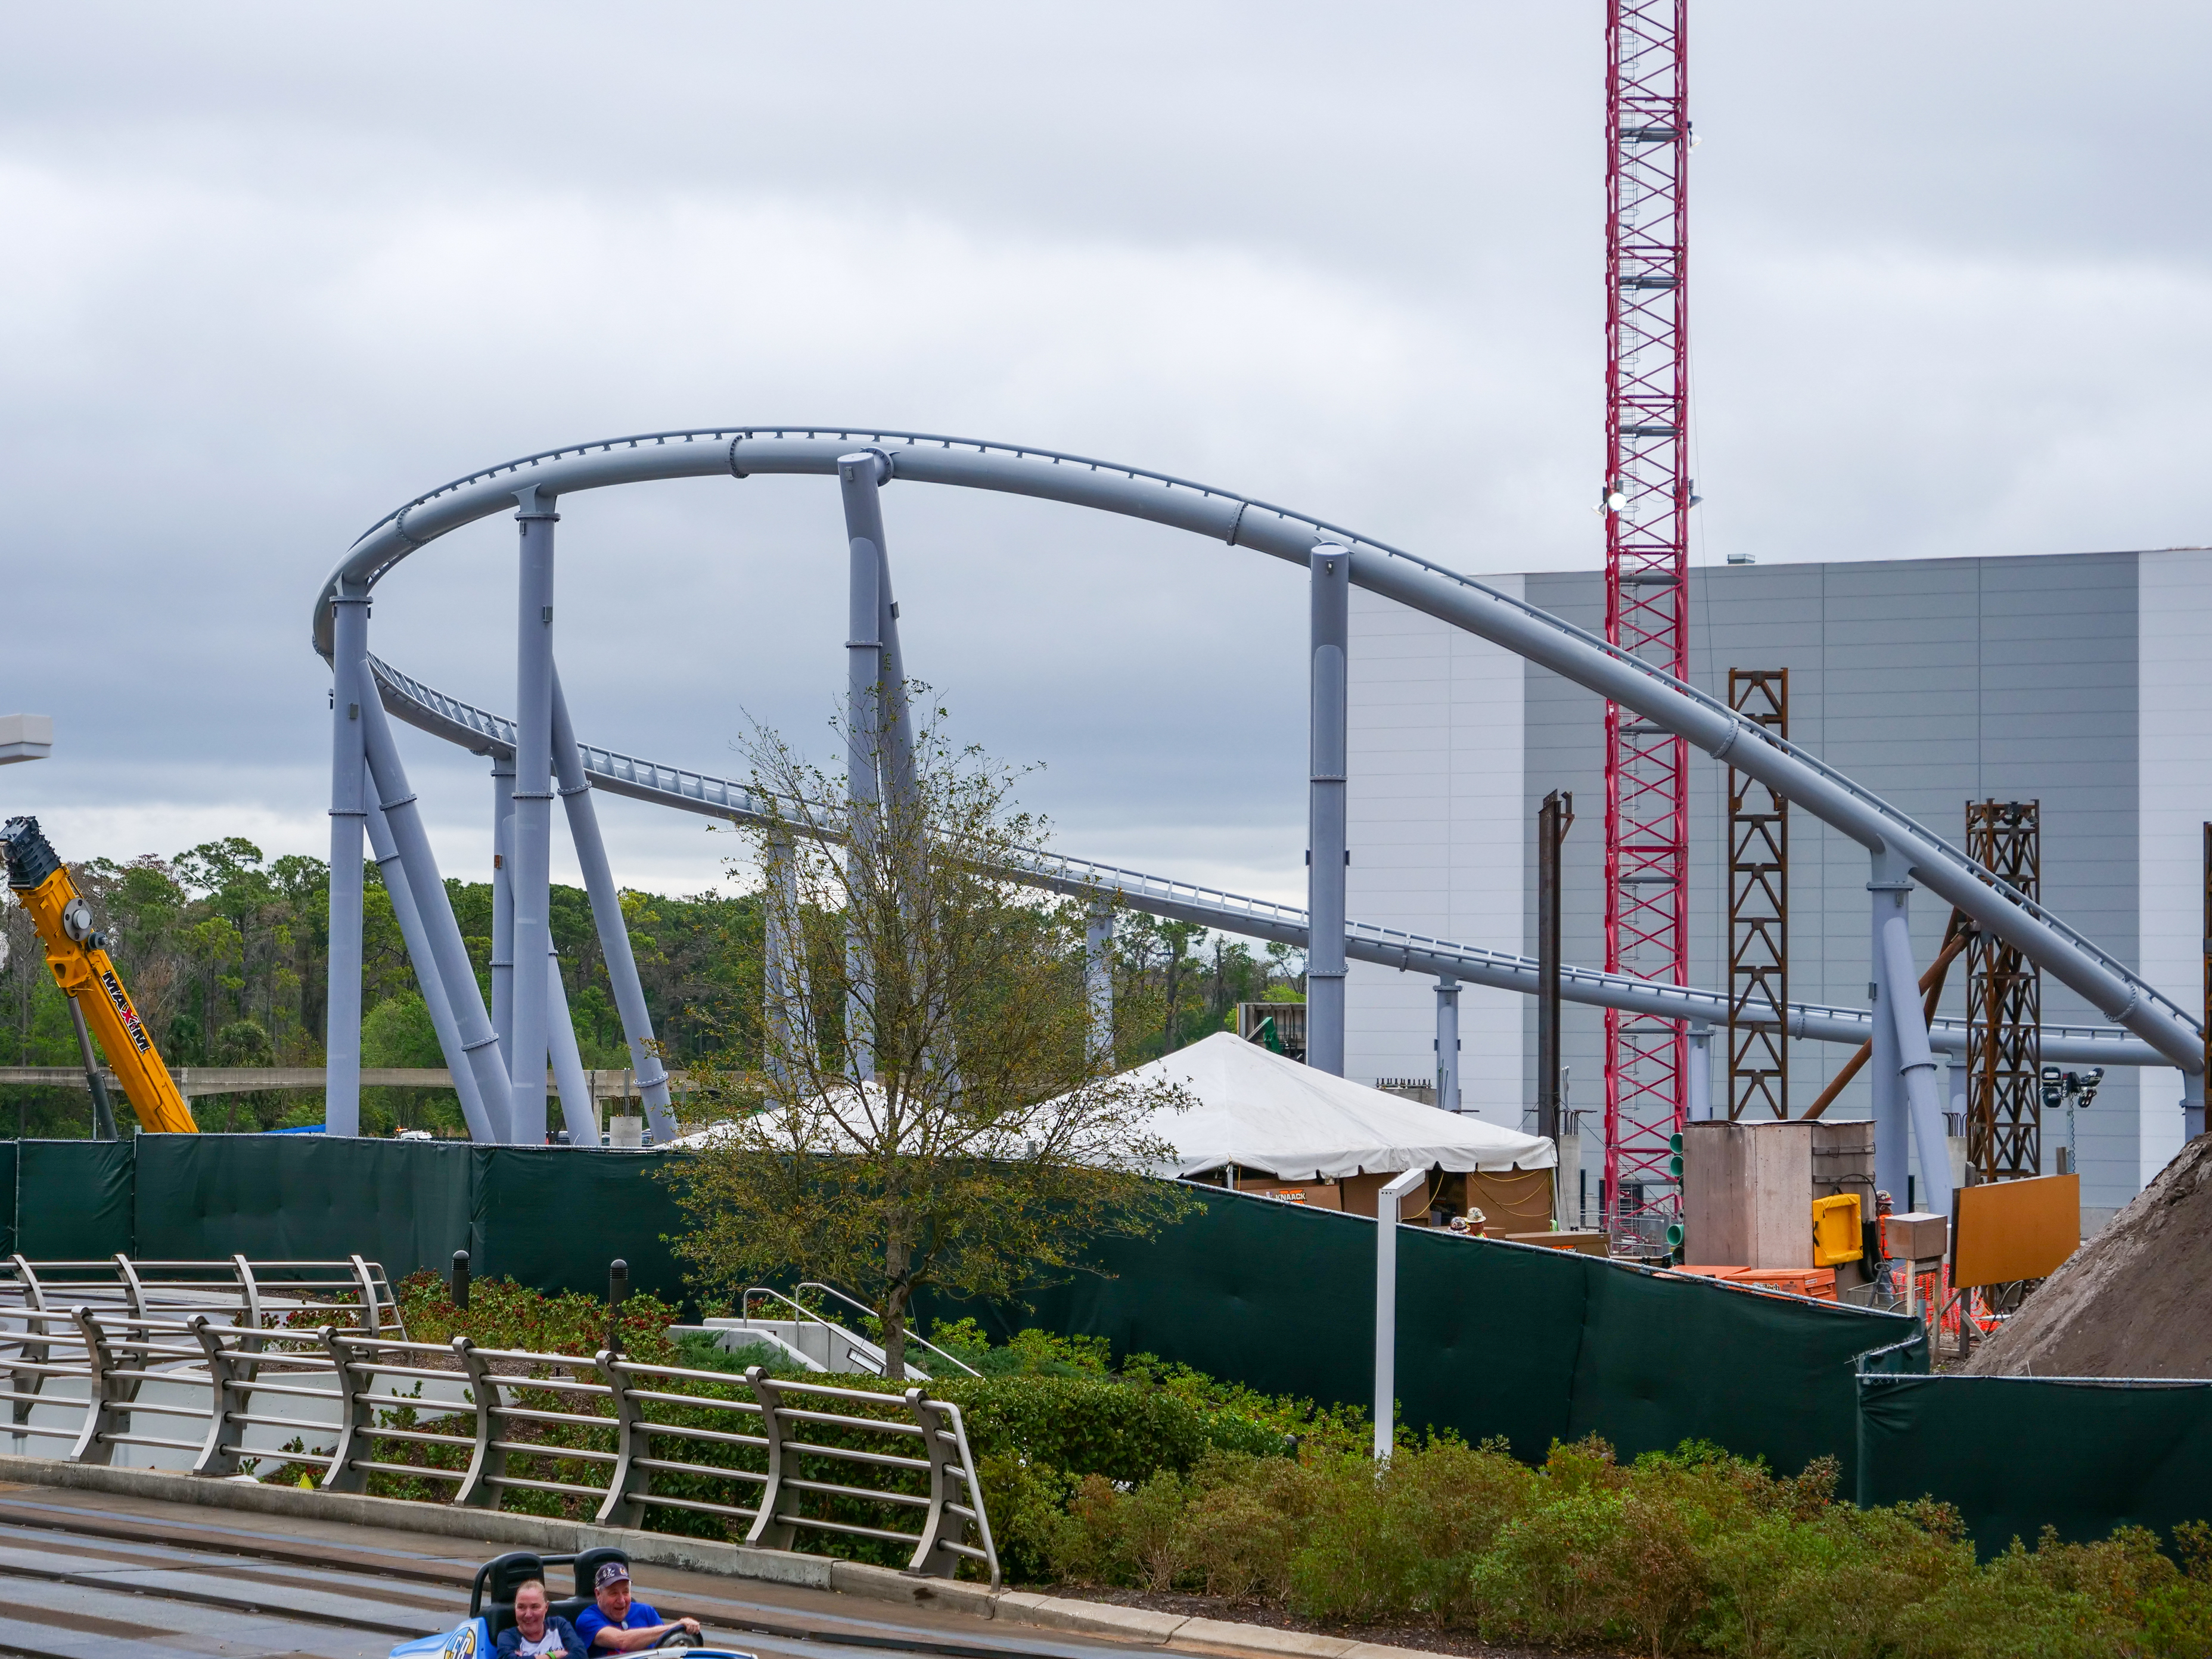 TRON Lightcycle Run Construction